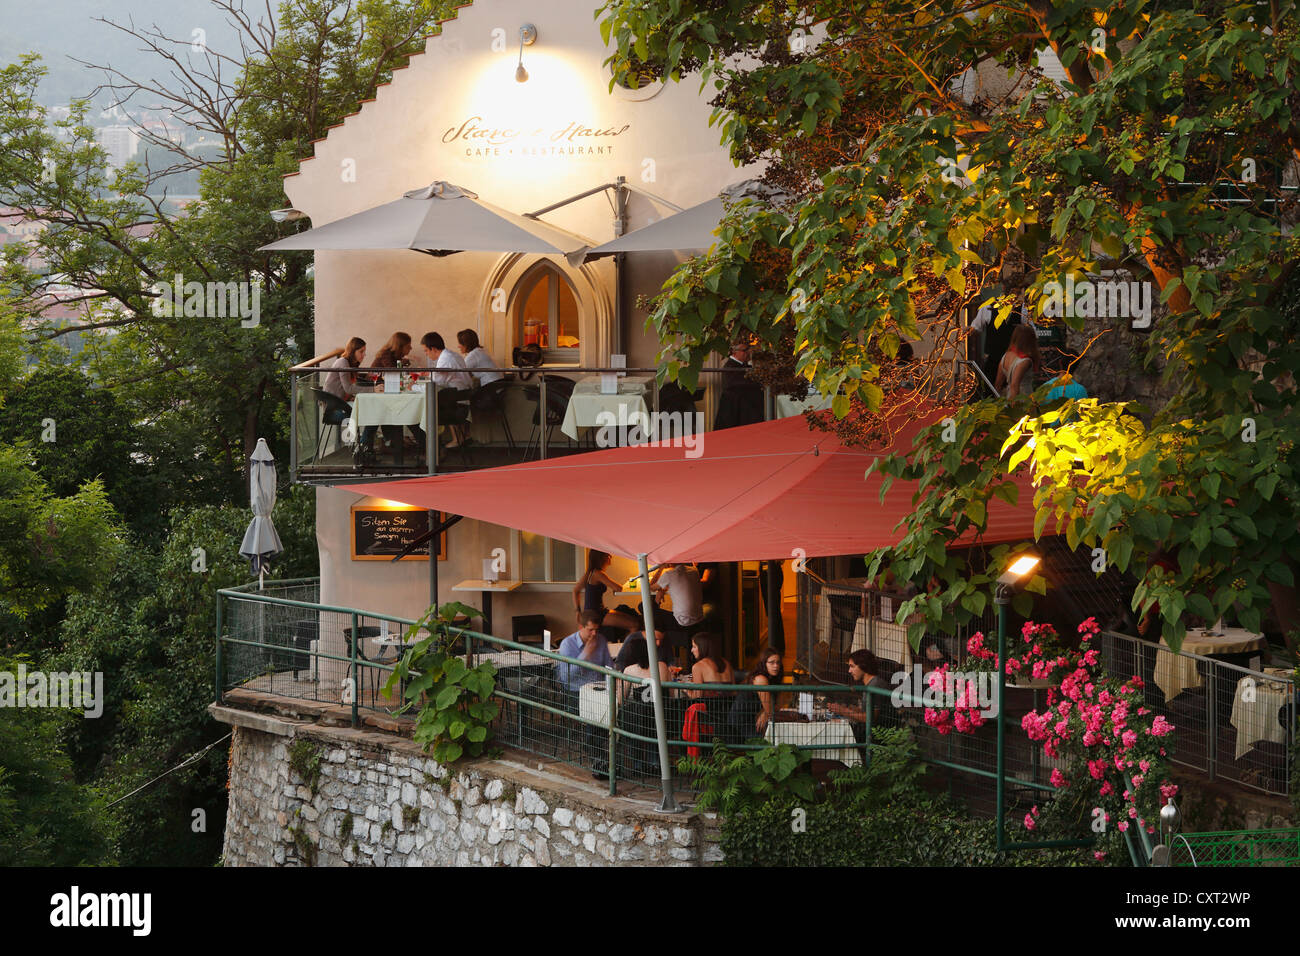 Starcke Haus restaurant on Schlossberg castle hill Graz